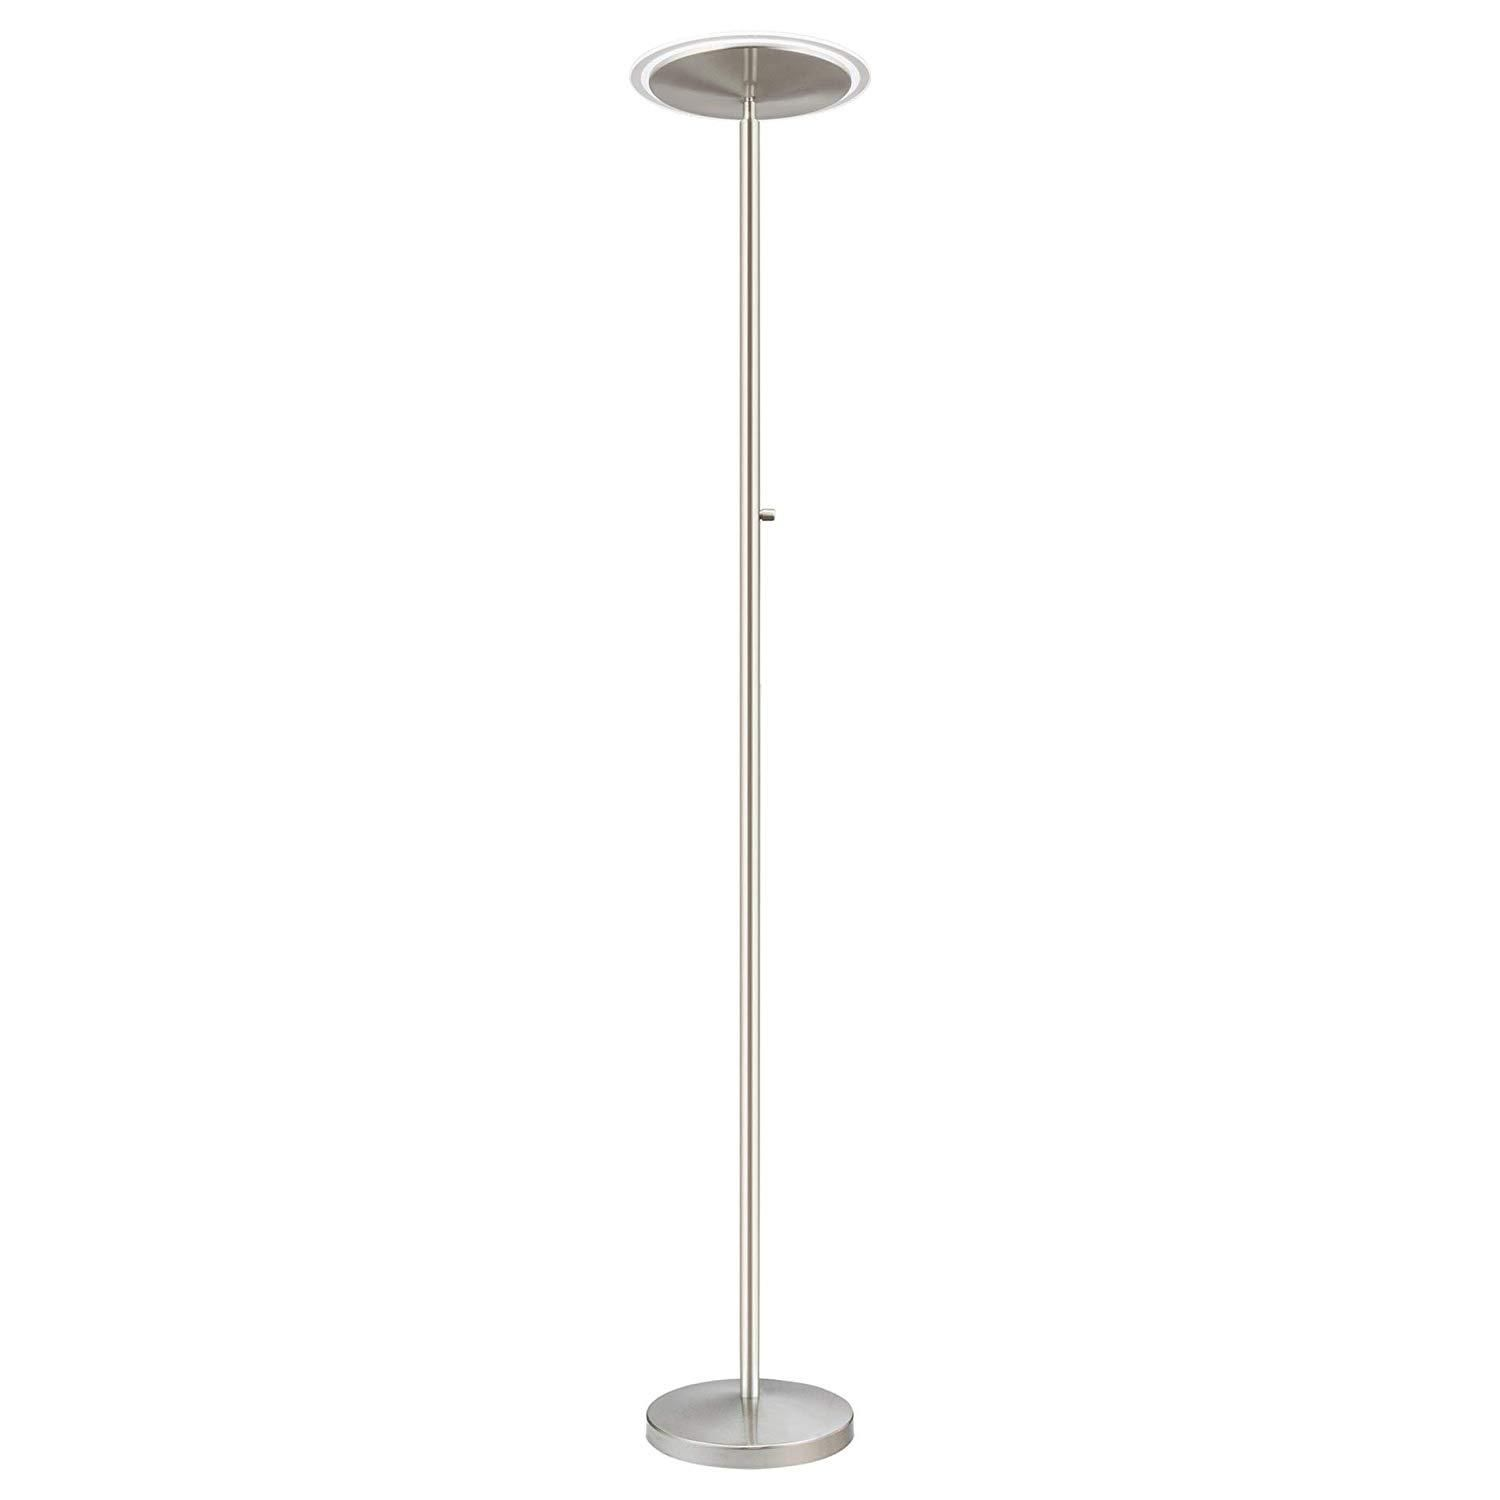 Kira Home Horizon 70 Modern Led Torchiere Floor Lamp 36w 300w Eq Glass Diffuser Dimmable Timer And Wall Switch Compatible Adjustable Head 3000k Thing 1